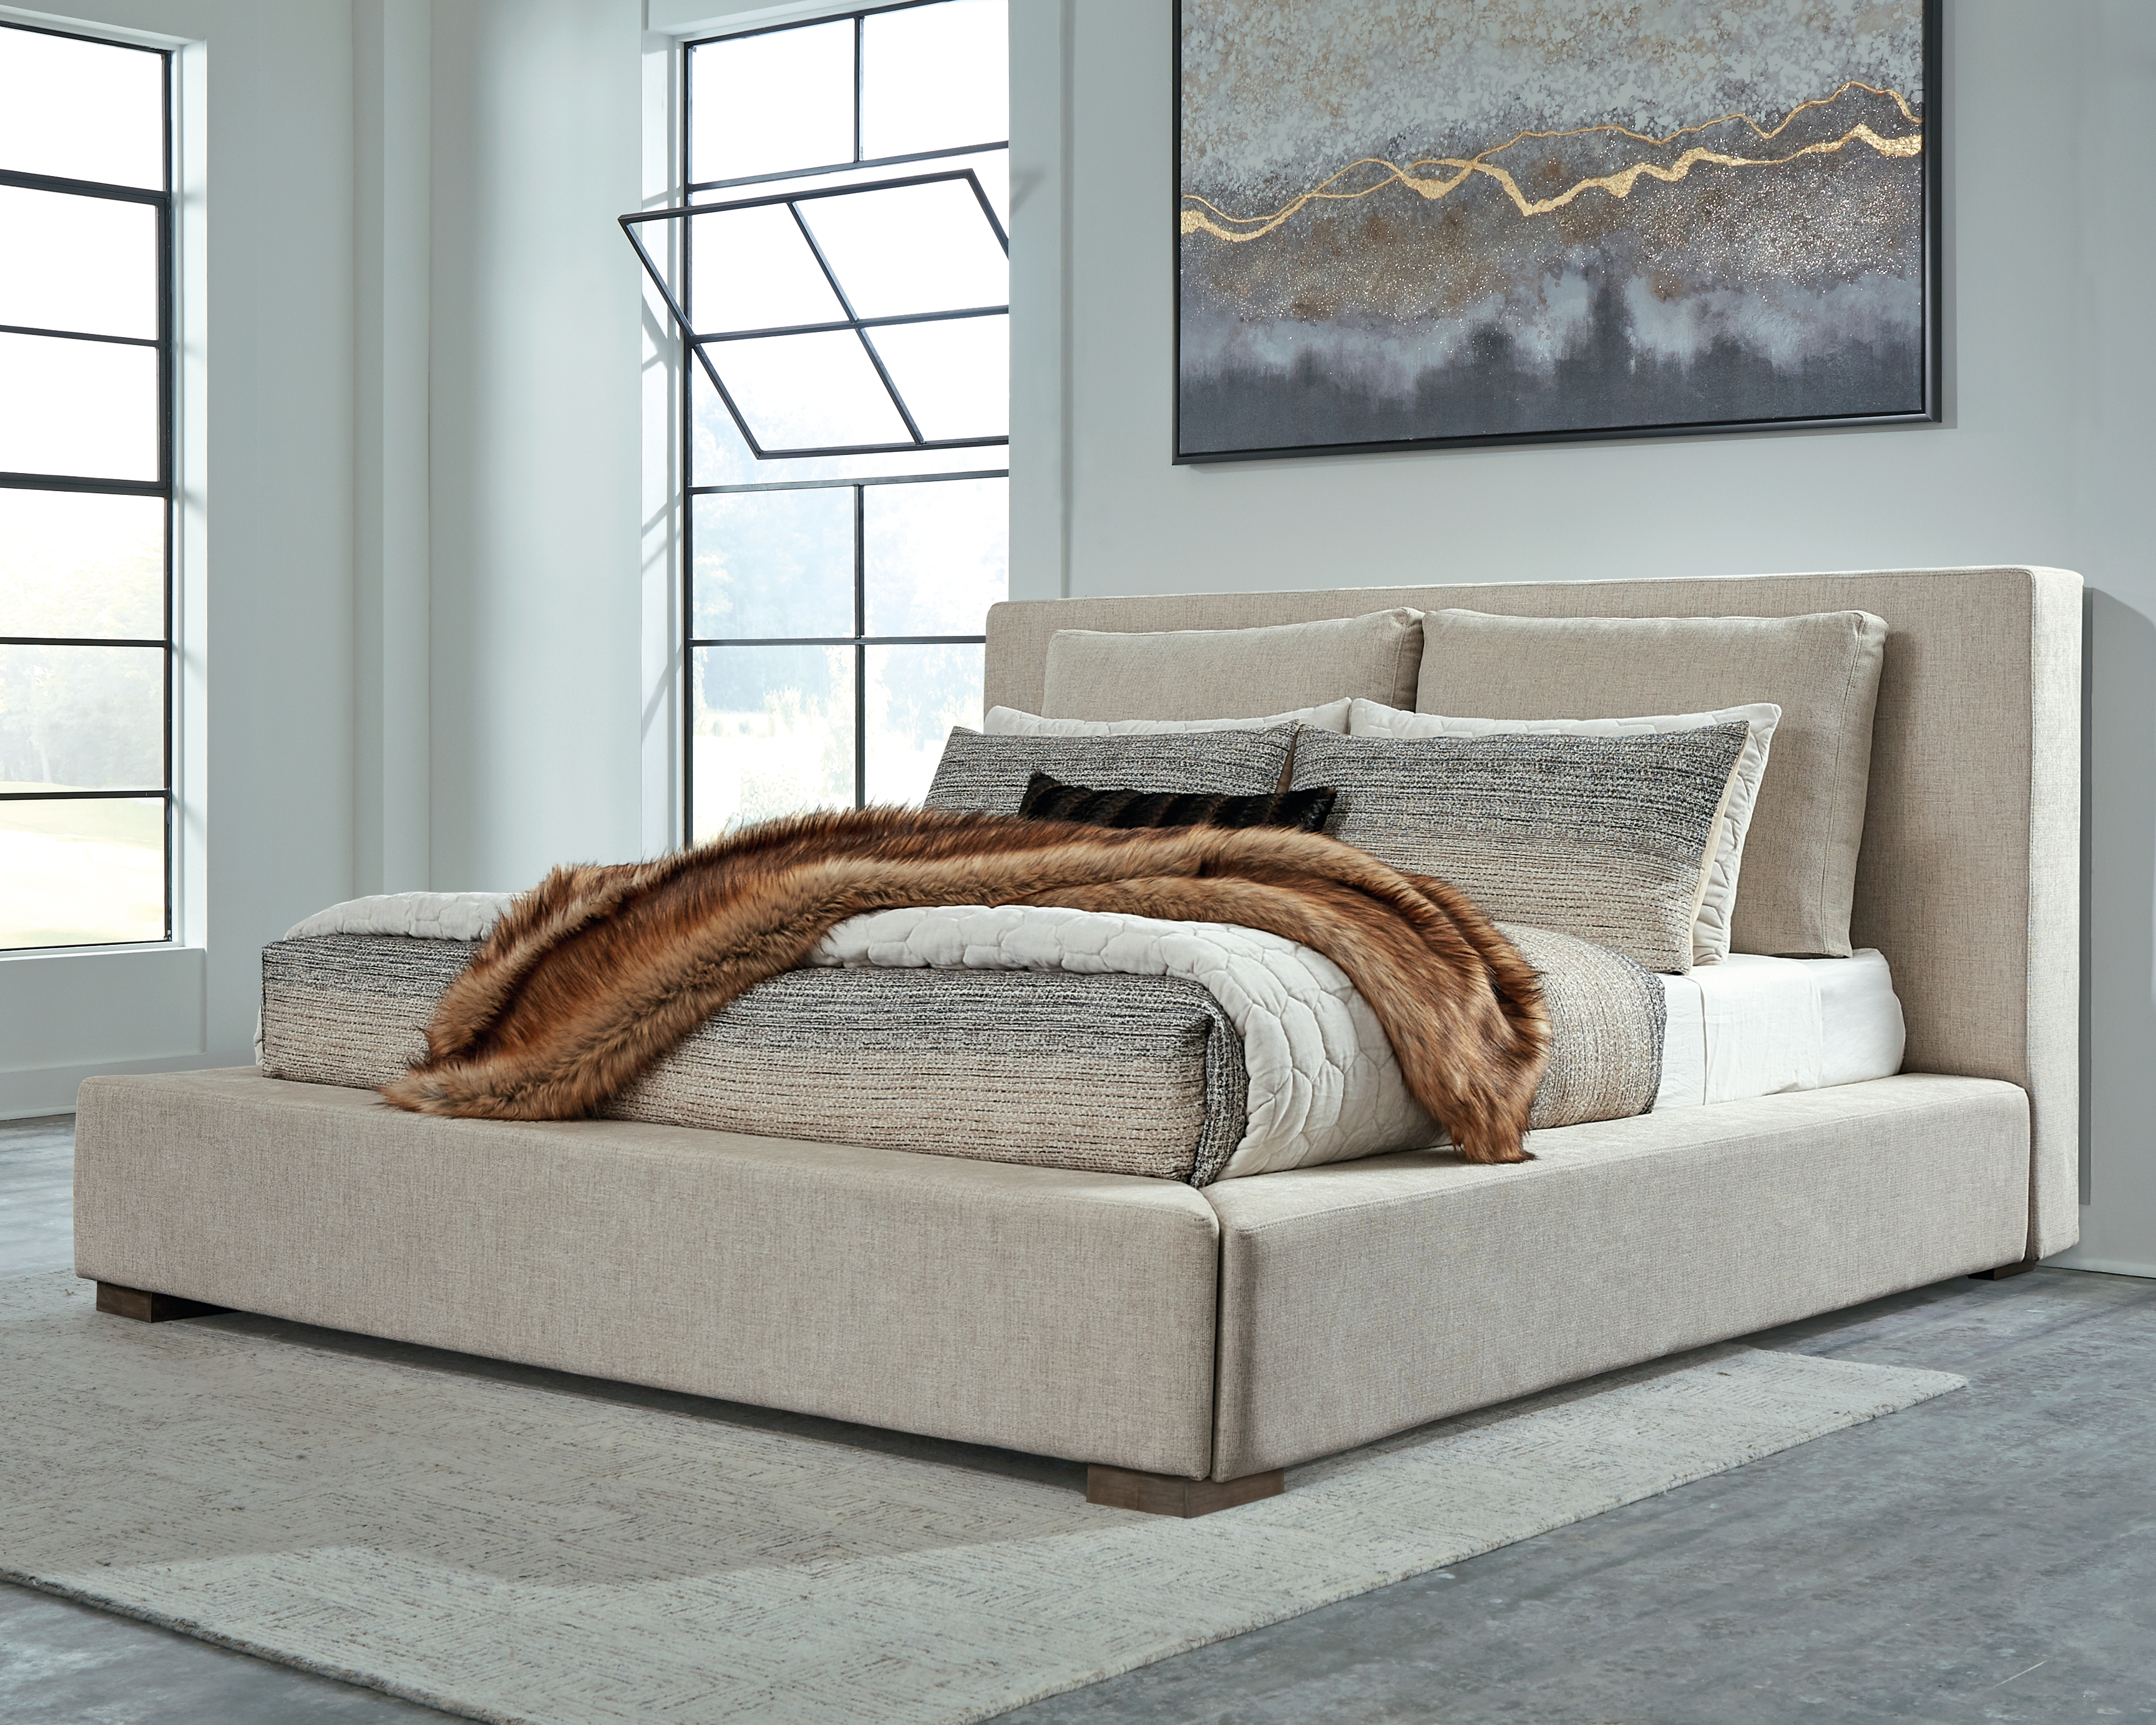 Langford King Upholstered Bed By Millennium By Ashley Nis712129405 The Furniture Mall